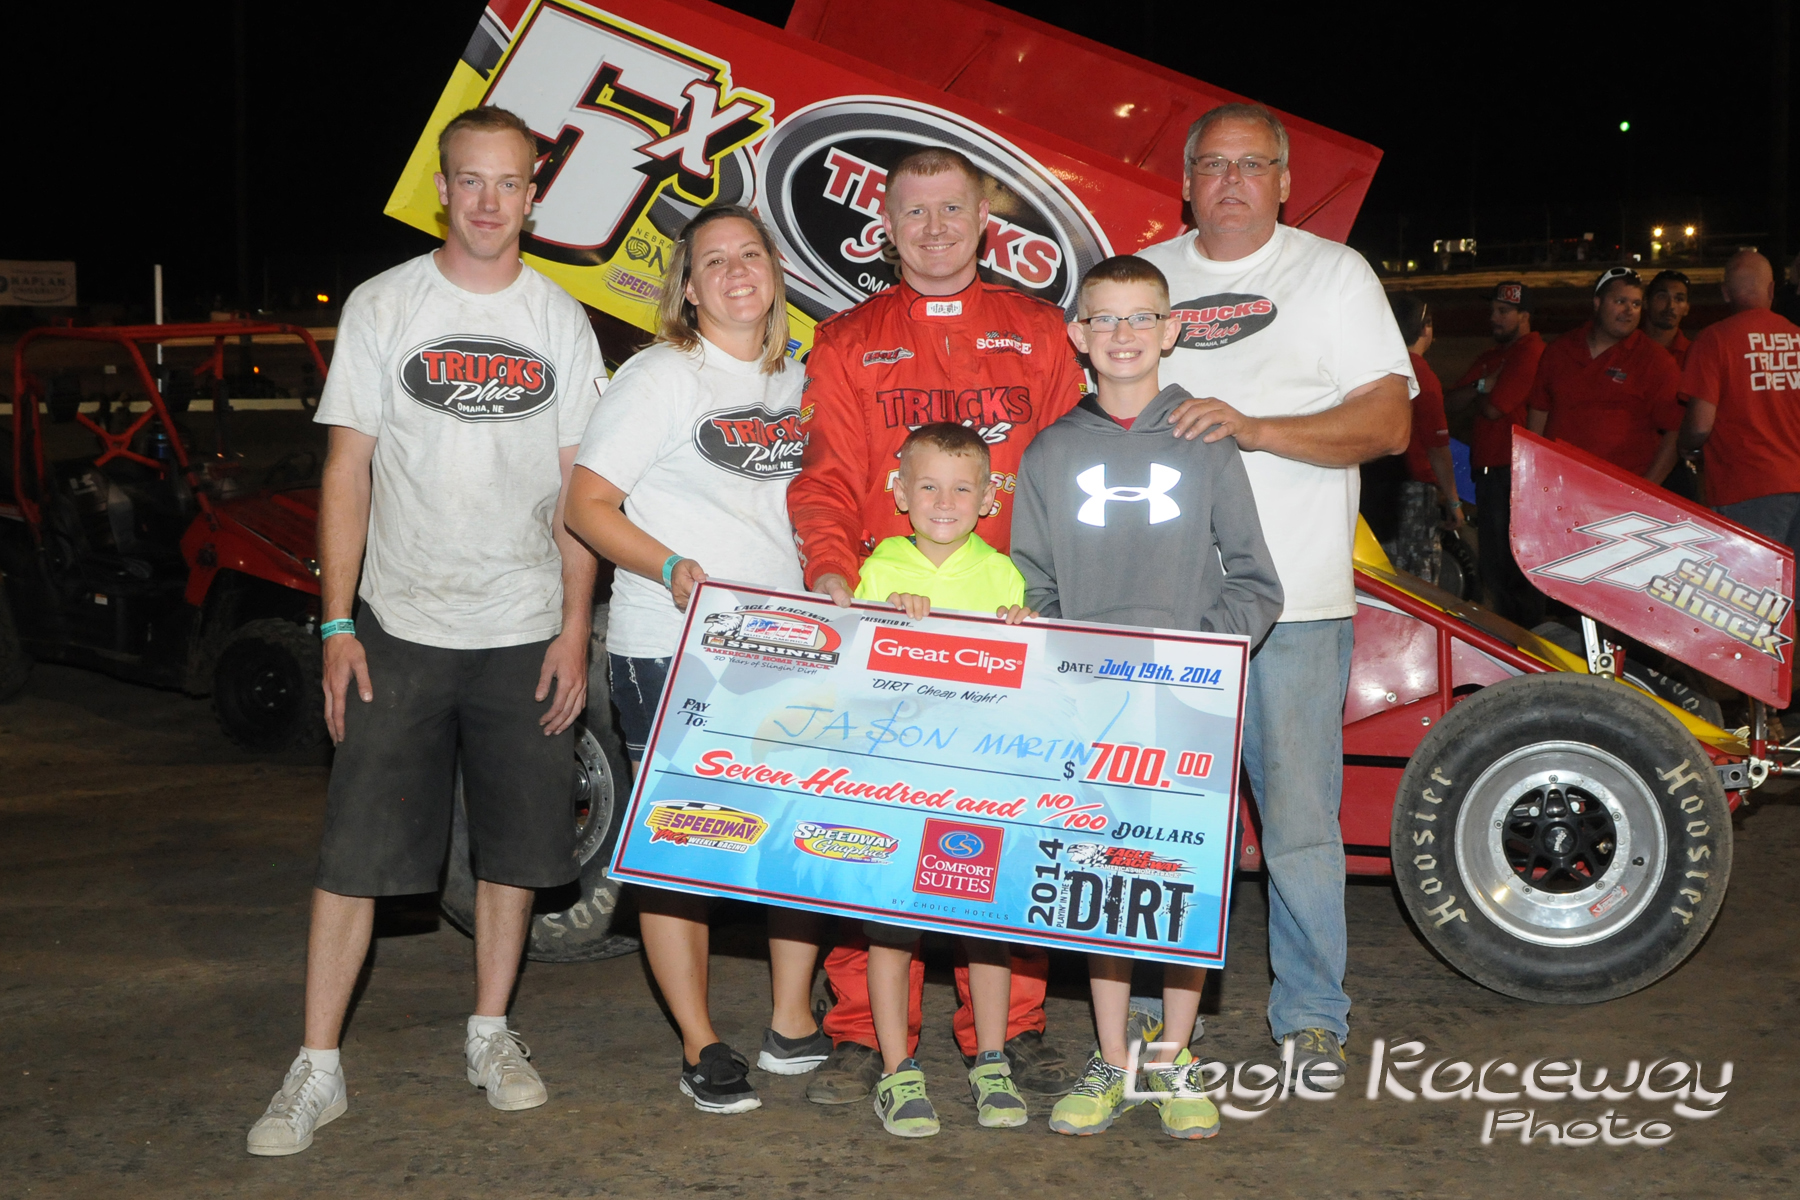 eagle-07-19-14-417-jason-martin-and-crew-and-family-joeorthphotos